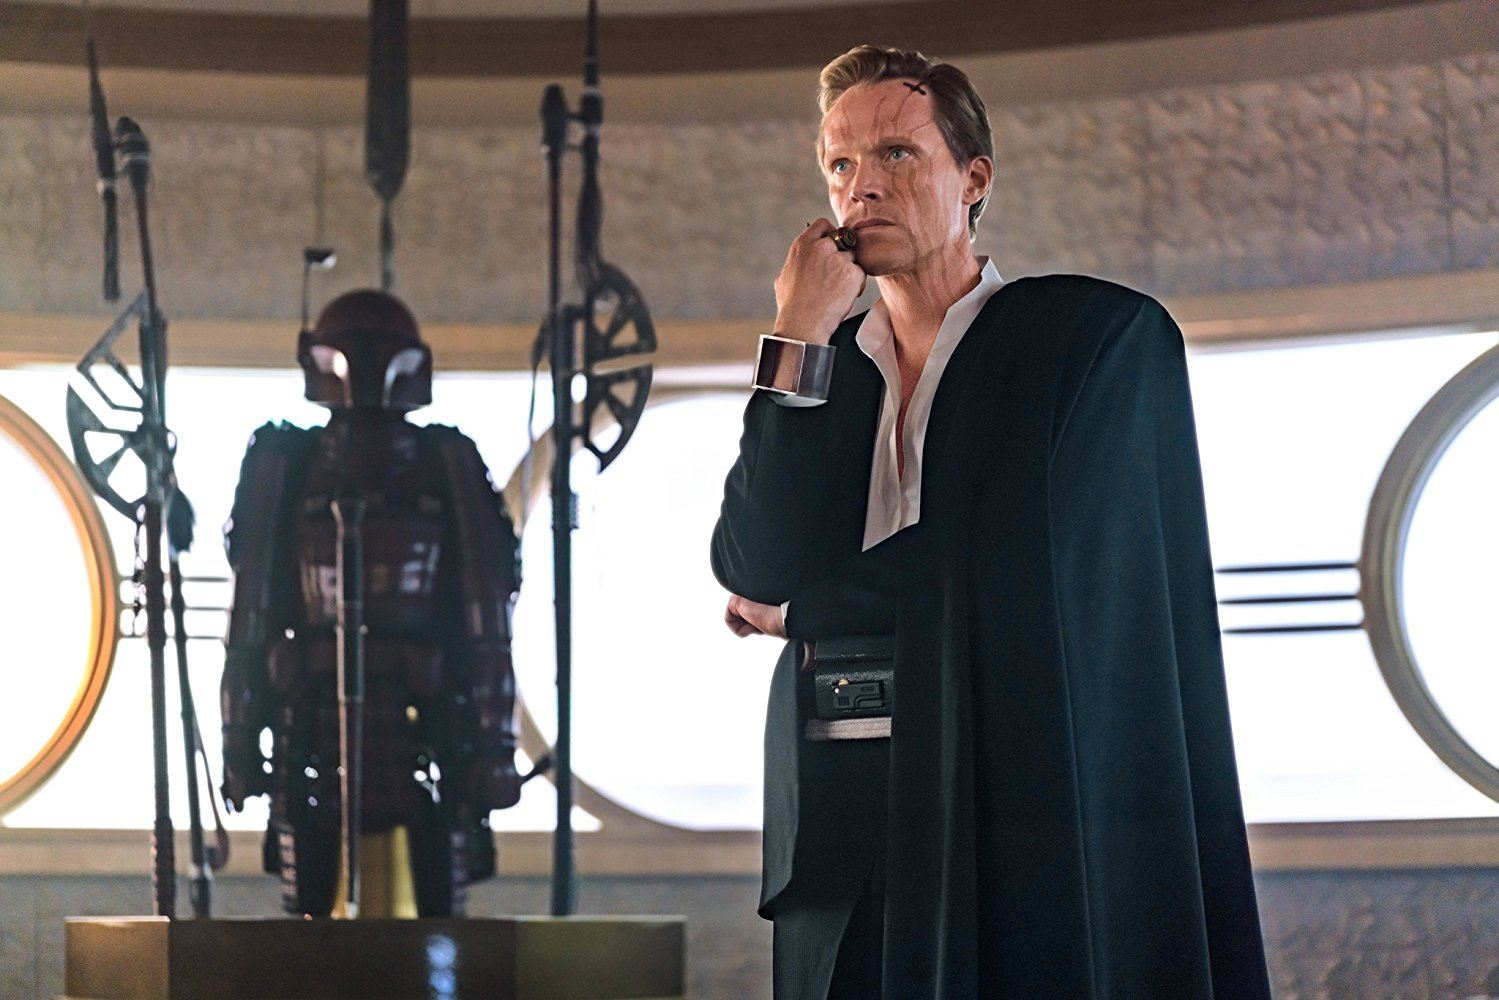 Paul Bettany as Dryden Vos in Solo: A Star Wars Story